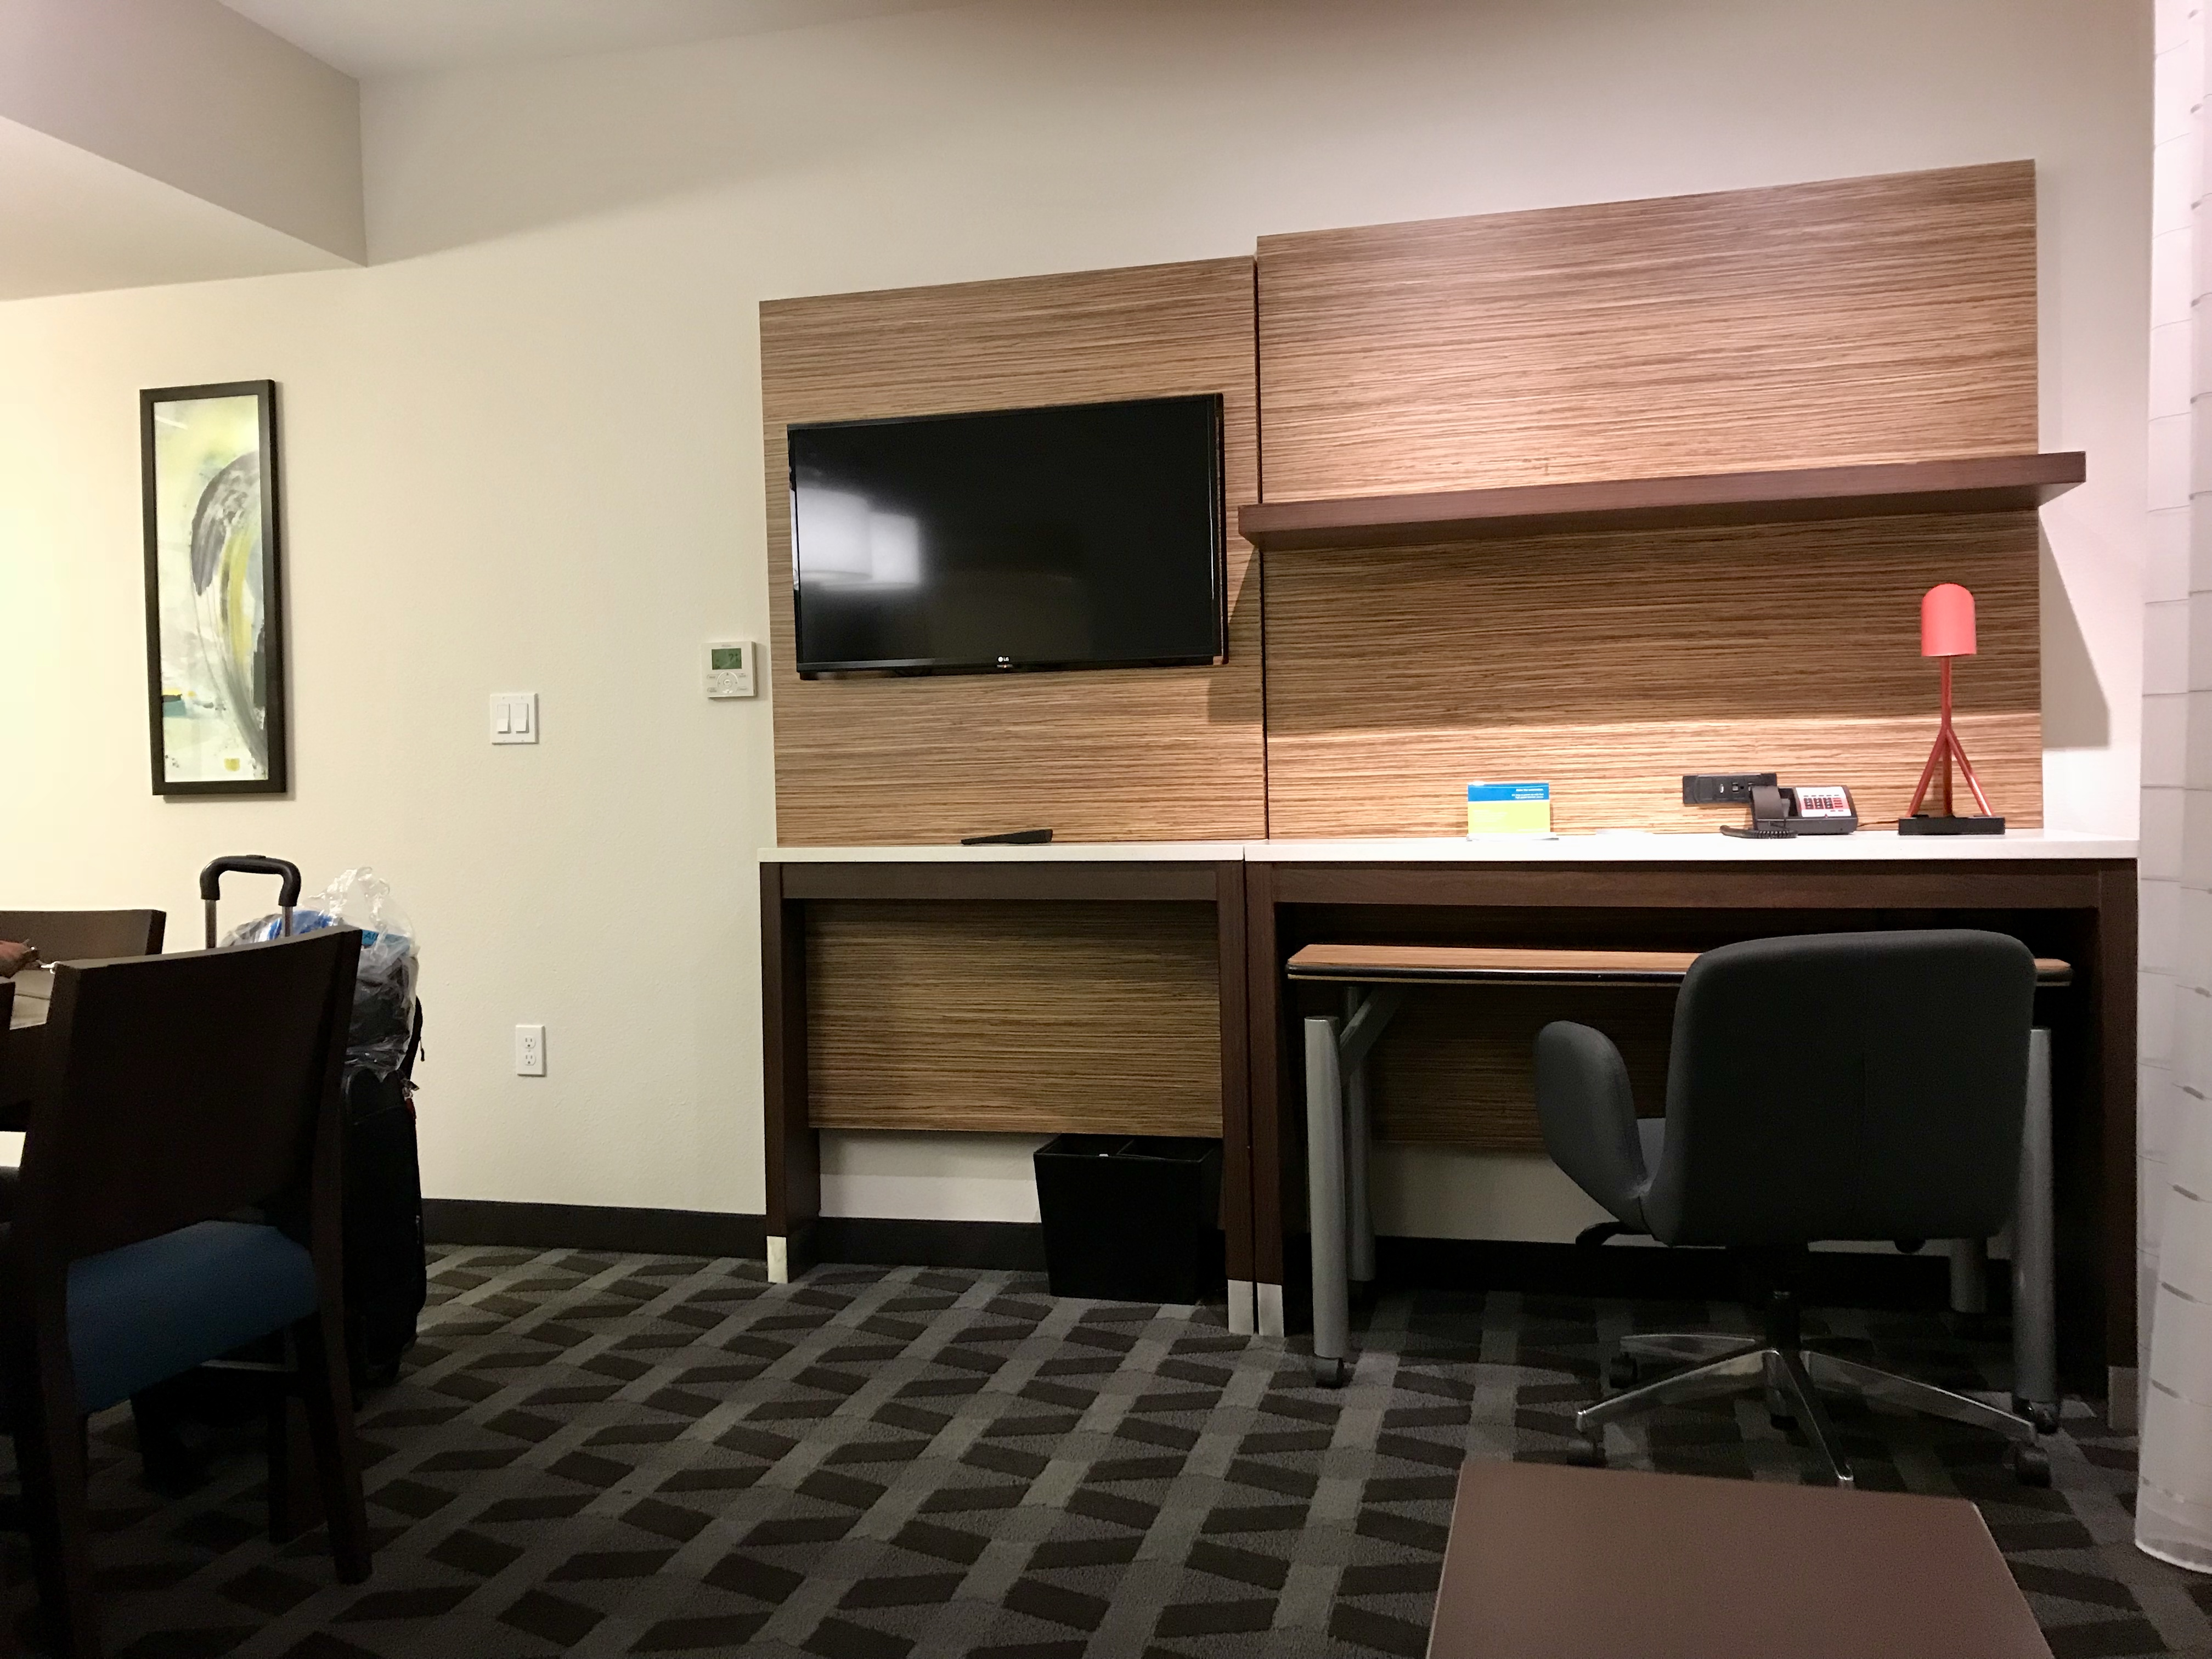 fc8092a36cd Hotel review  new TownePlace Suites is one of SF Bay Area s most ...